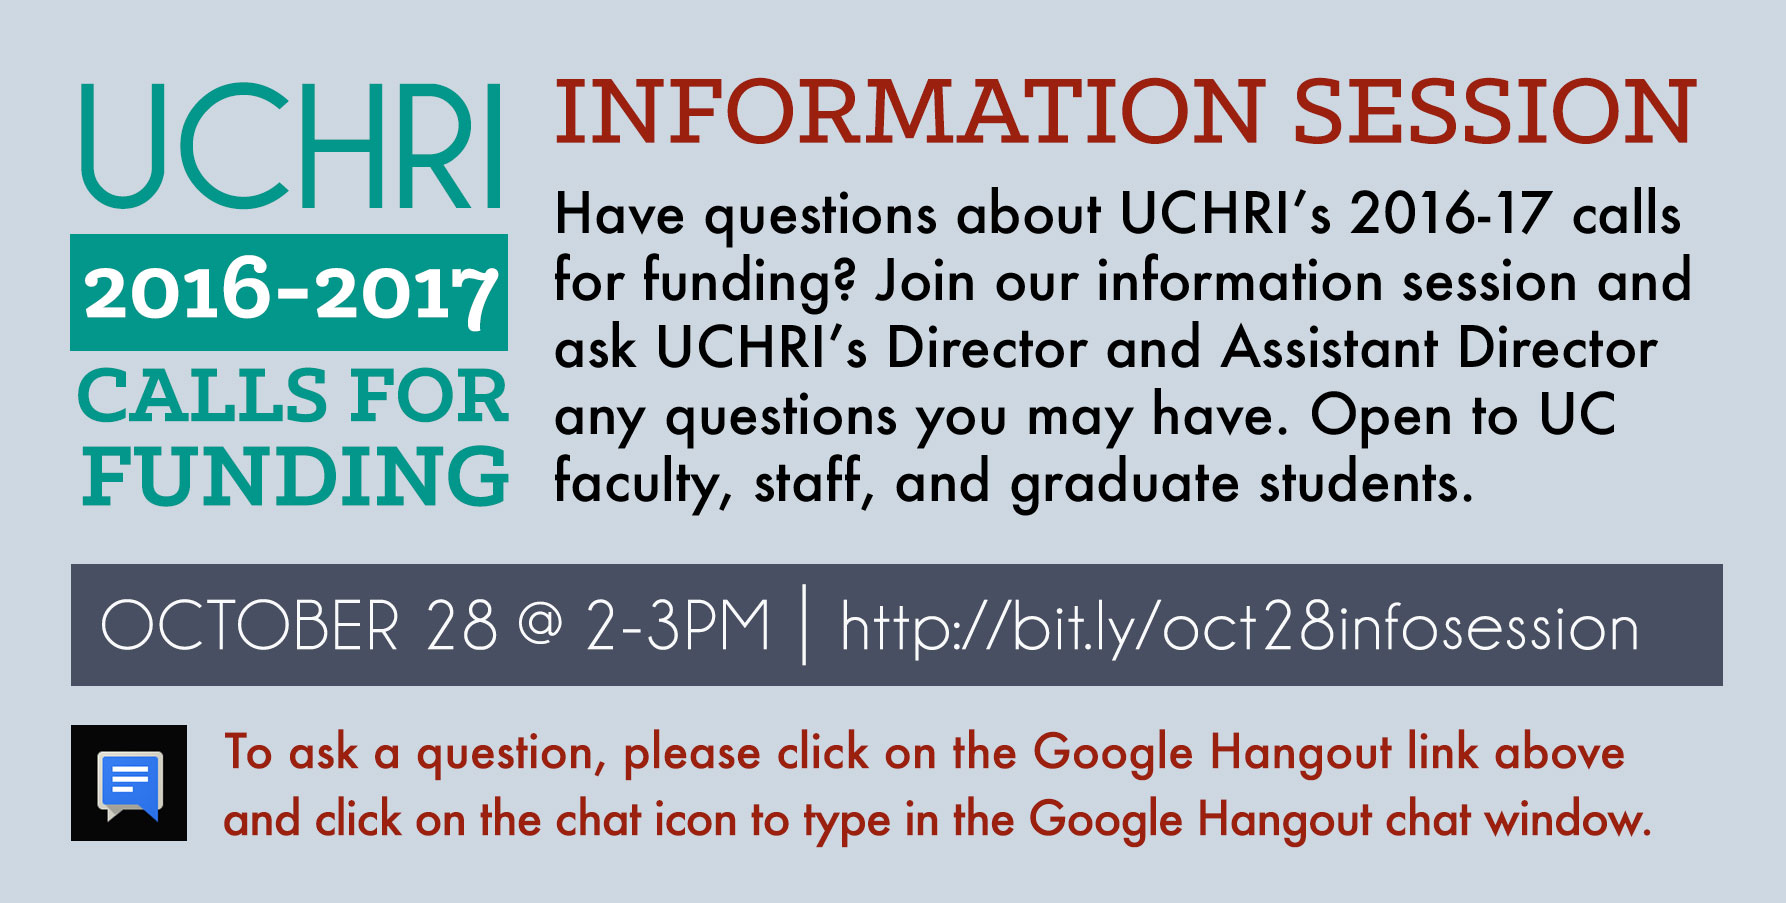 oct28-infosession_email